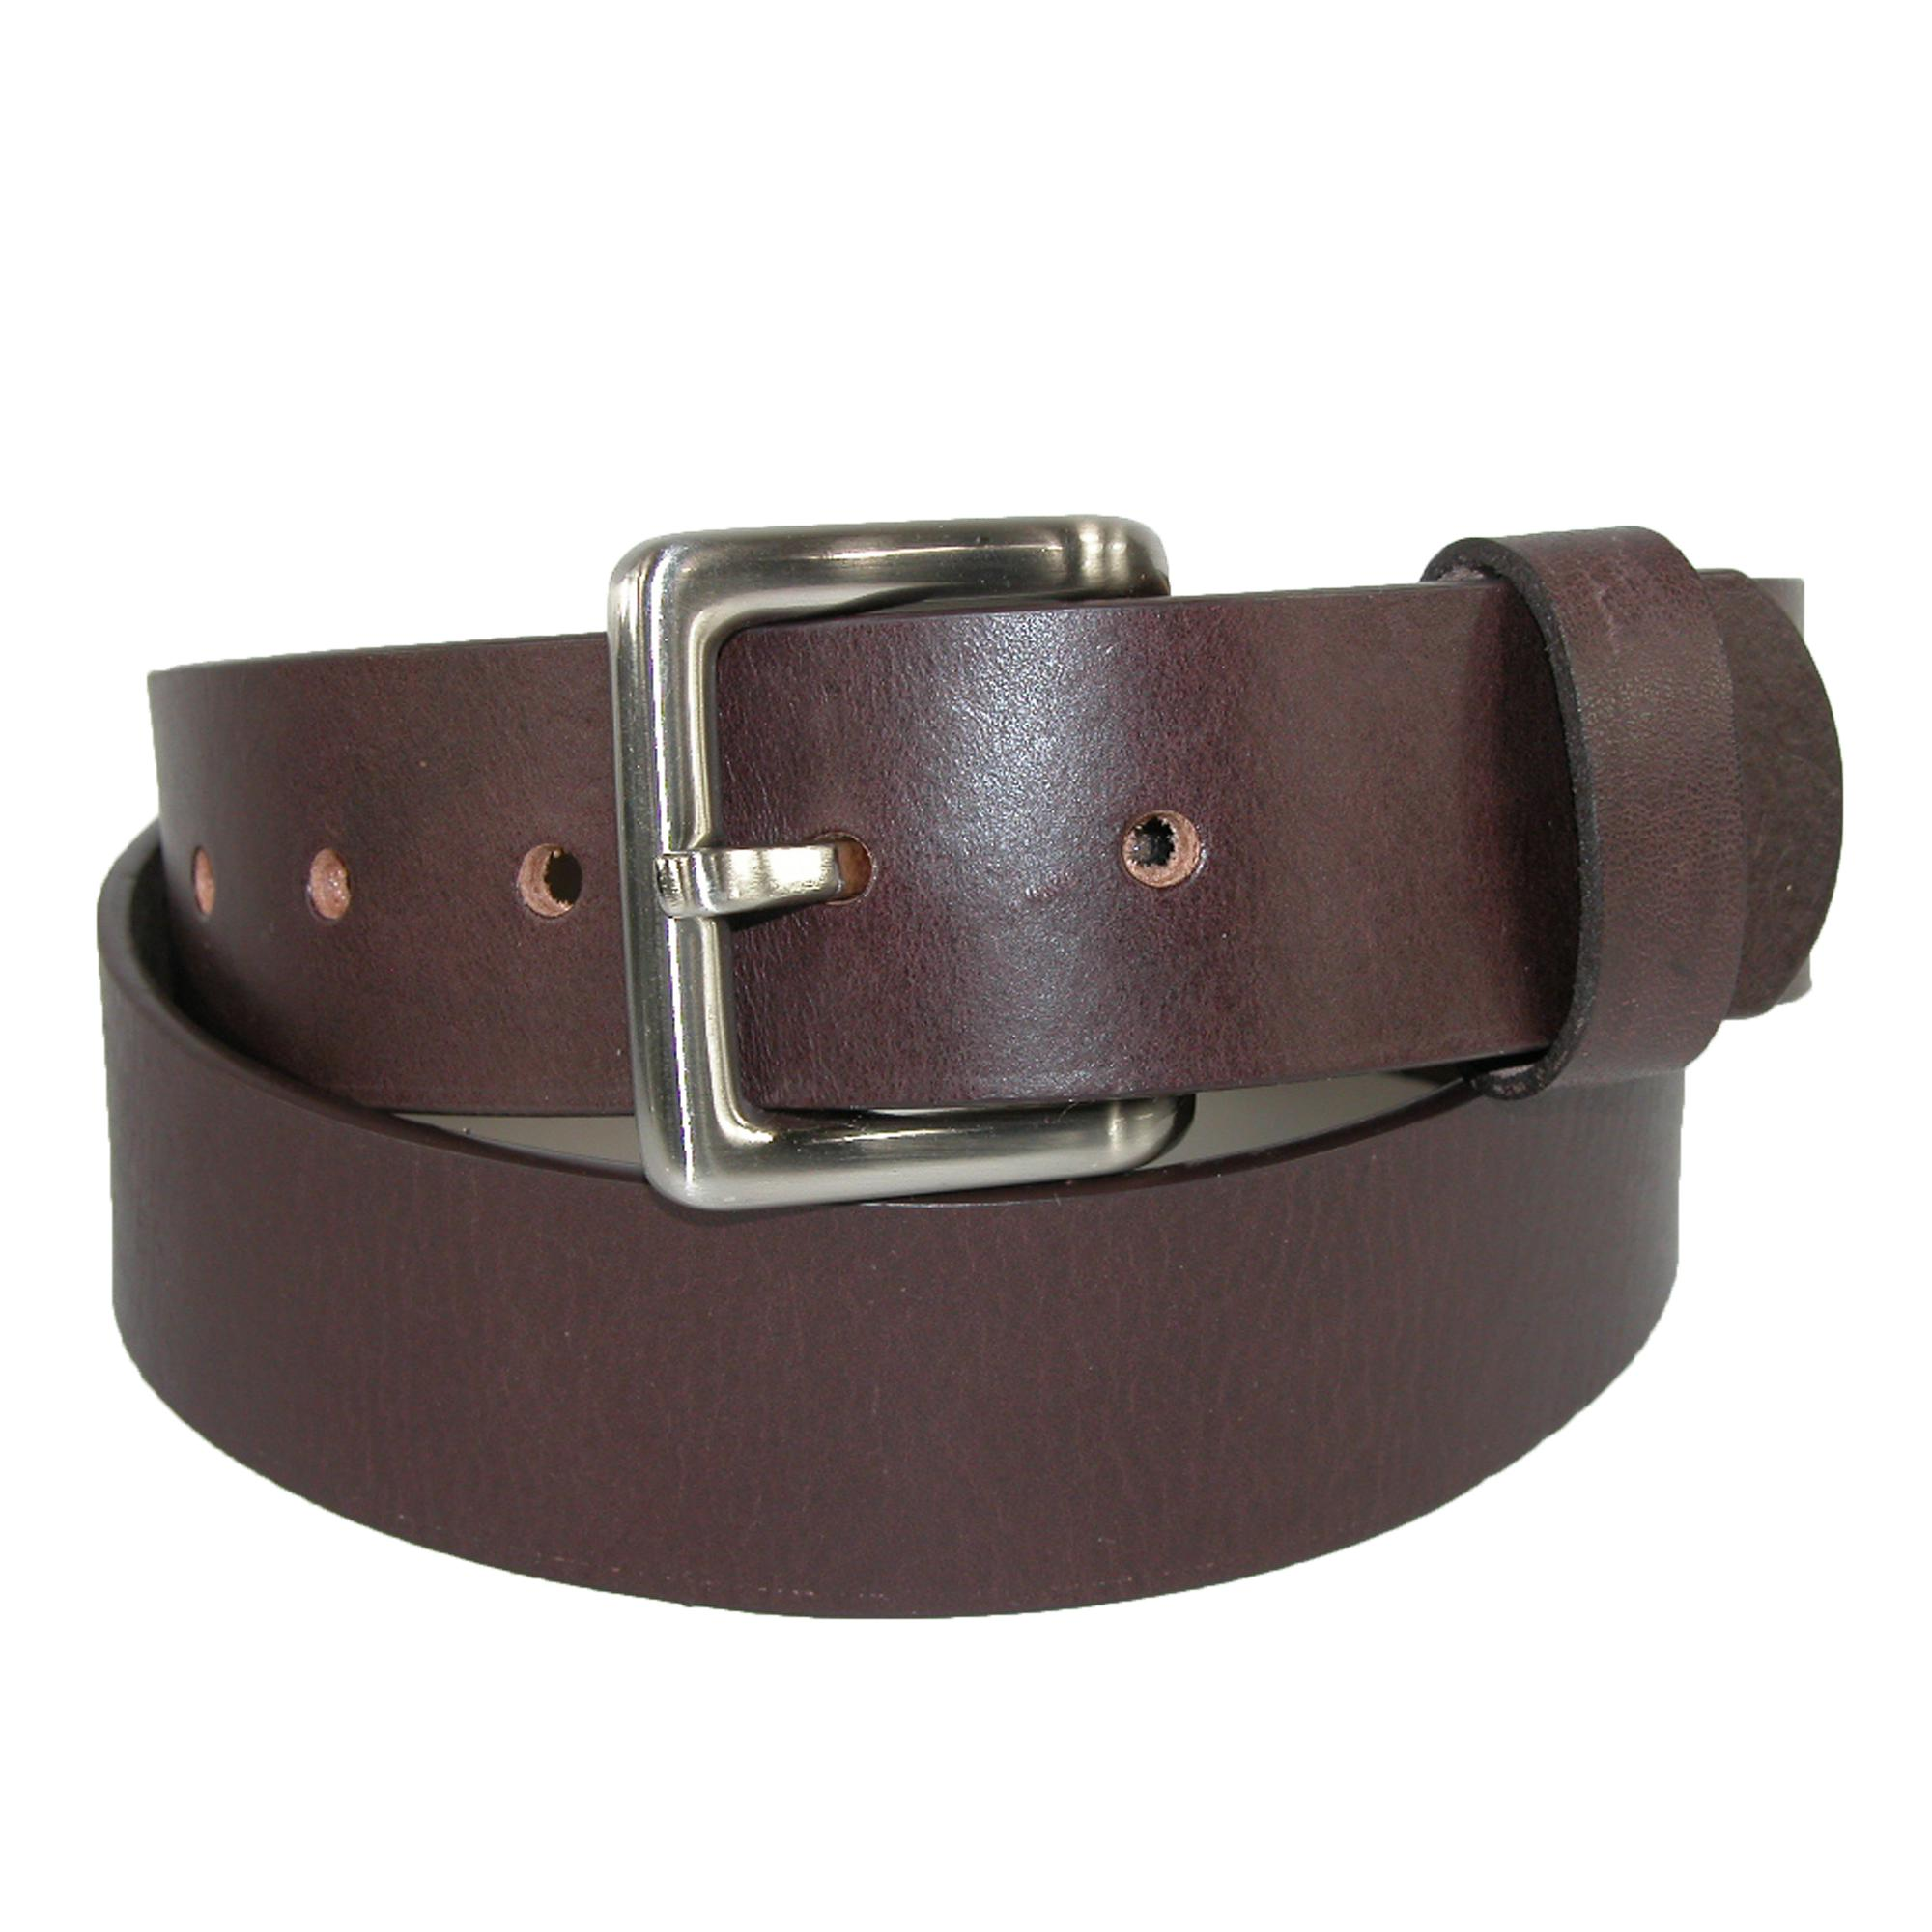 Toneka_Mens_Leather_Bridle_Belt_with_Removable_Buckle_